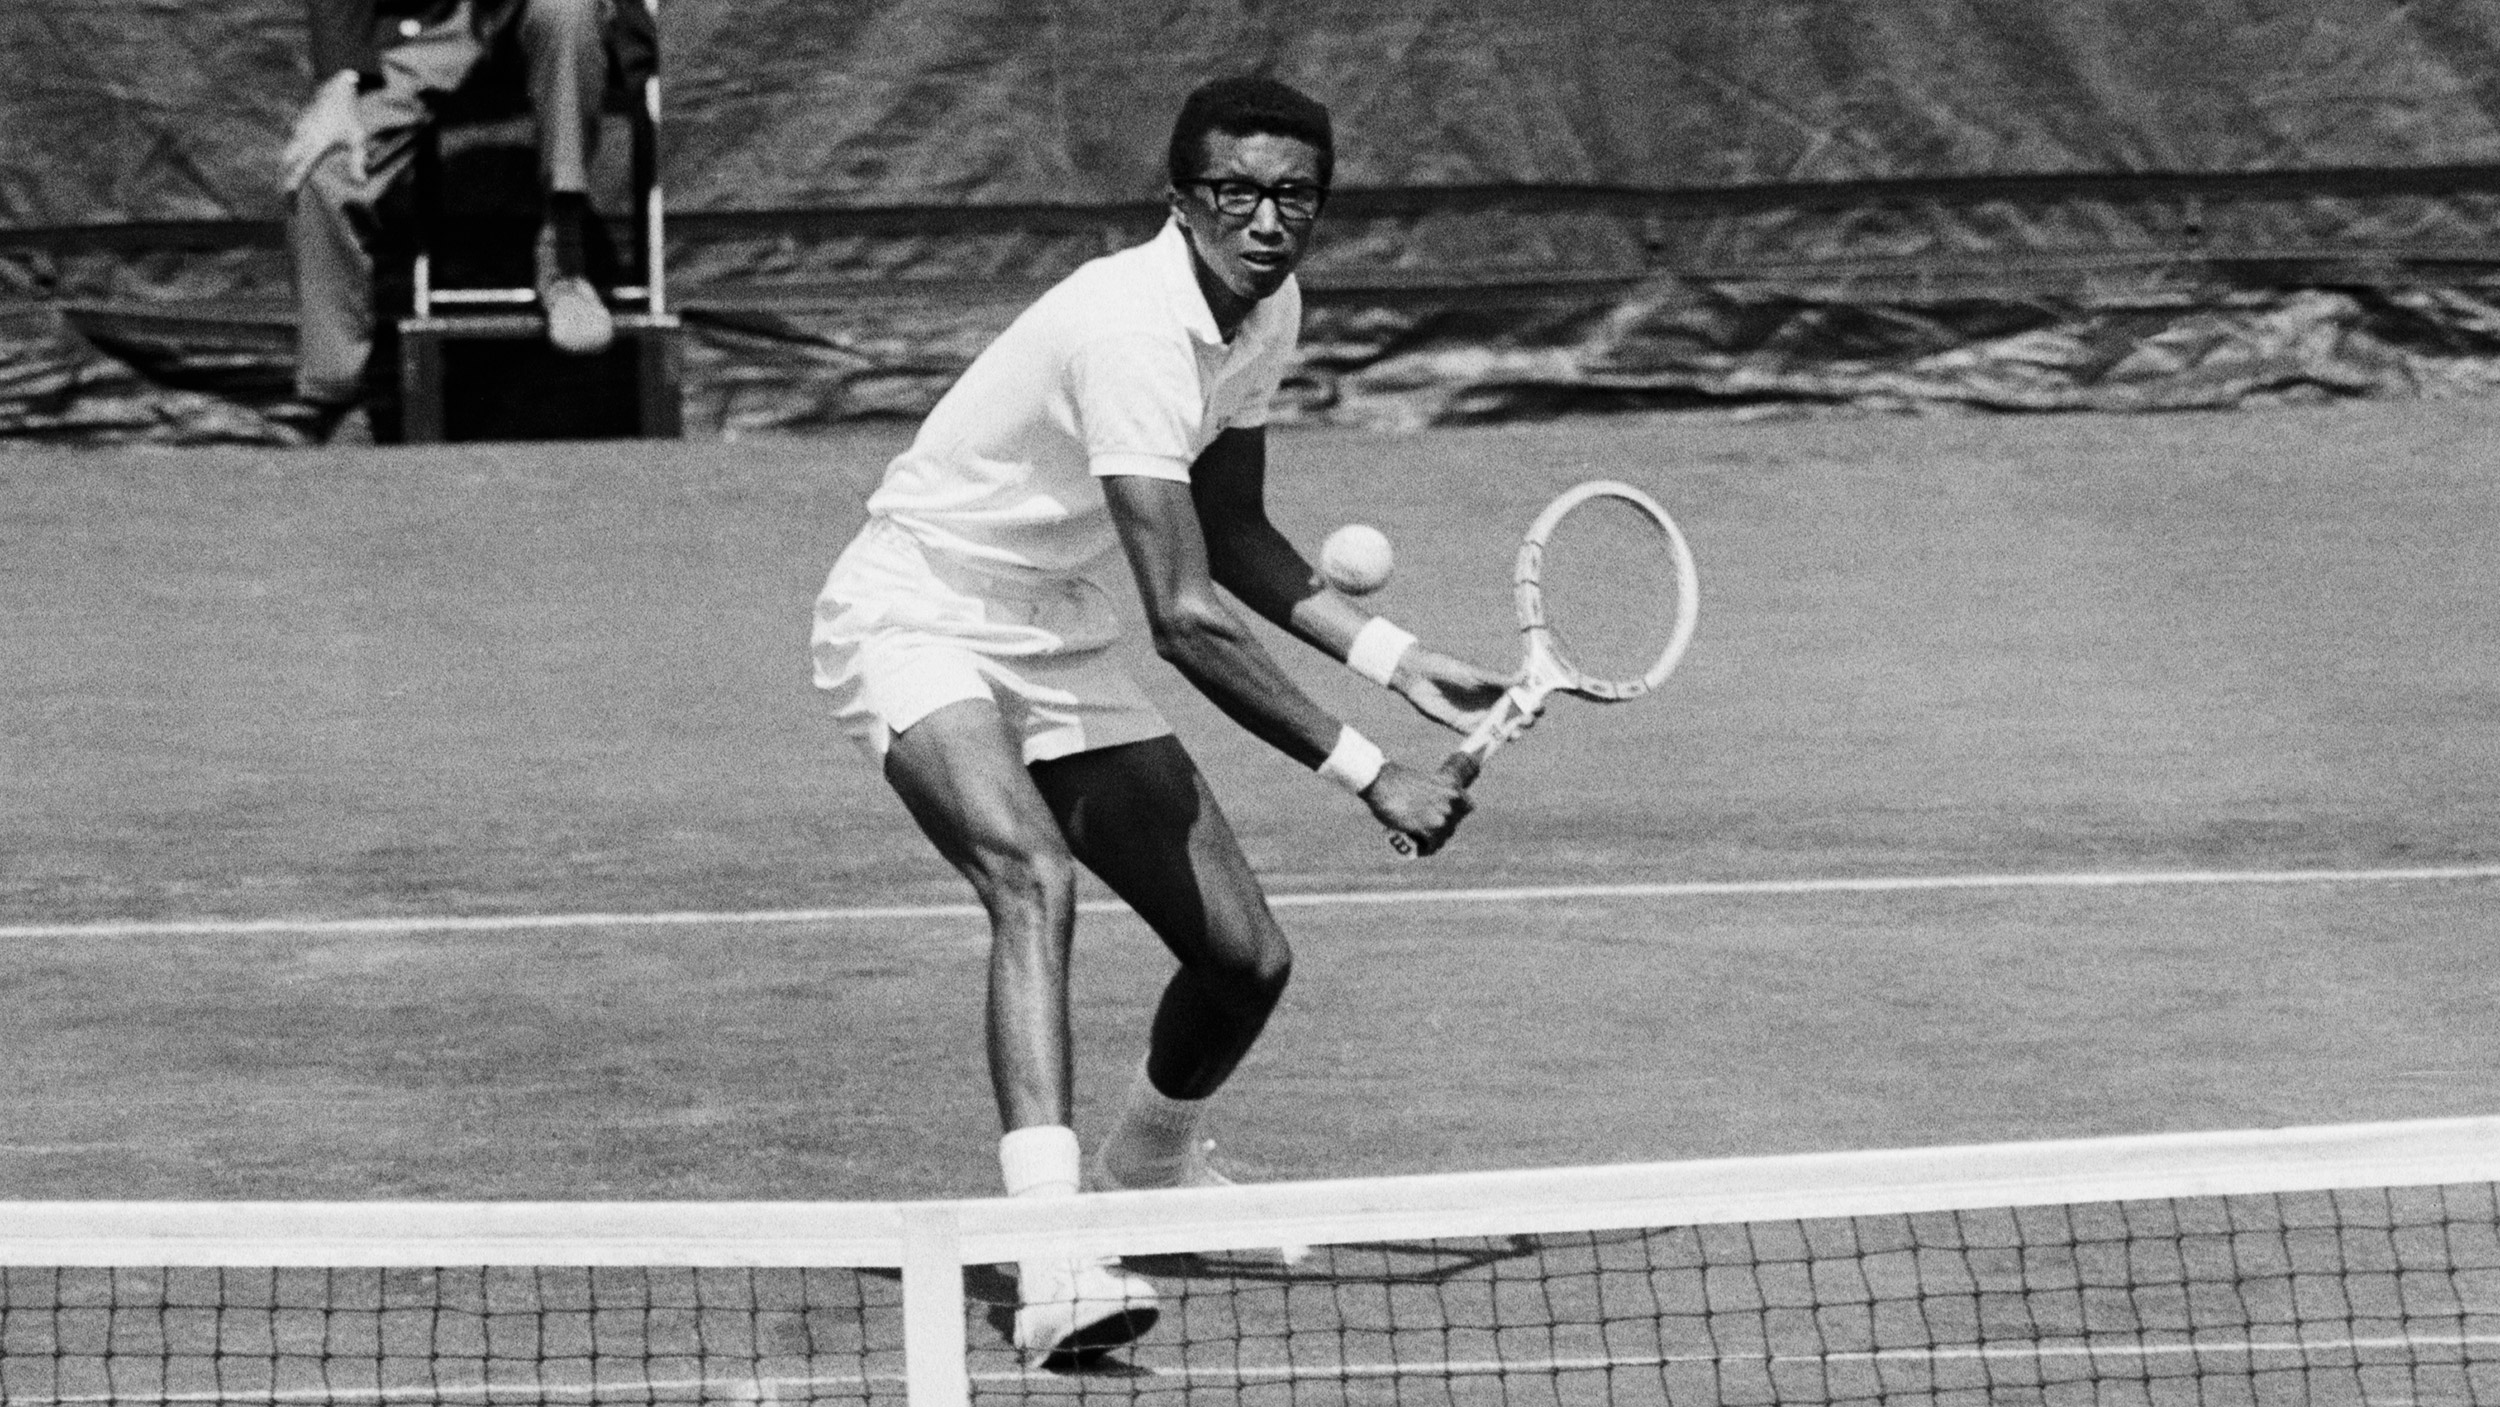 Arthur Ashe S Legacy Of Activism More Important Than His